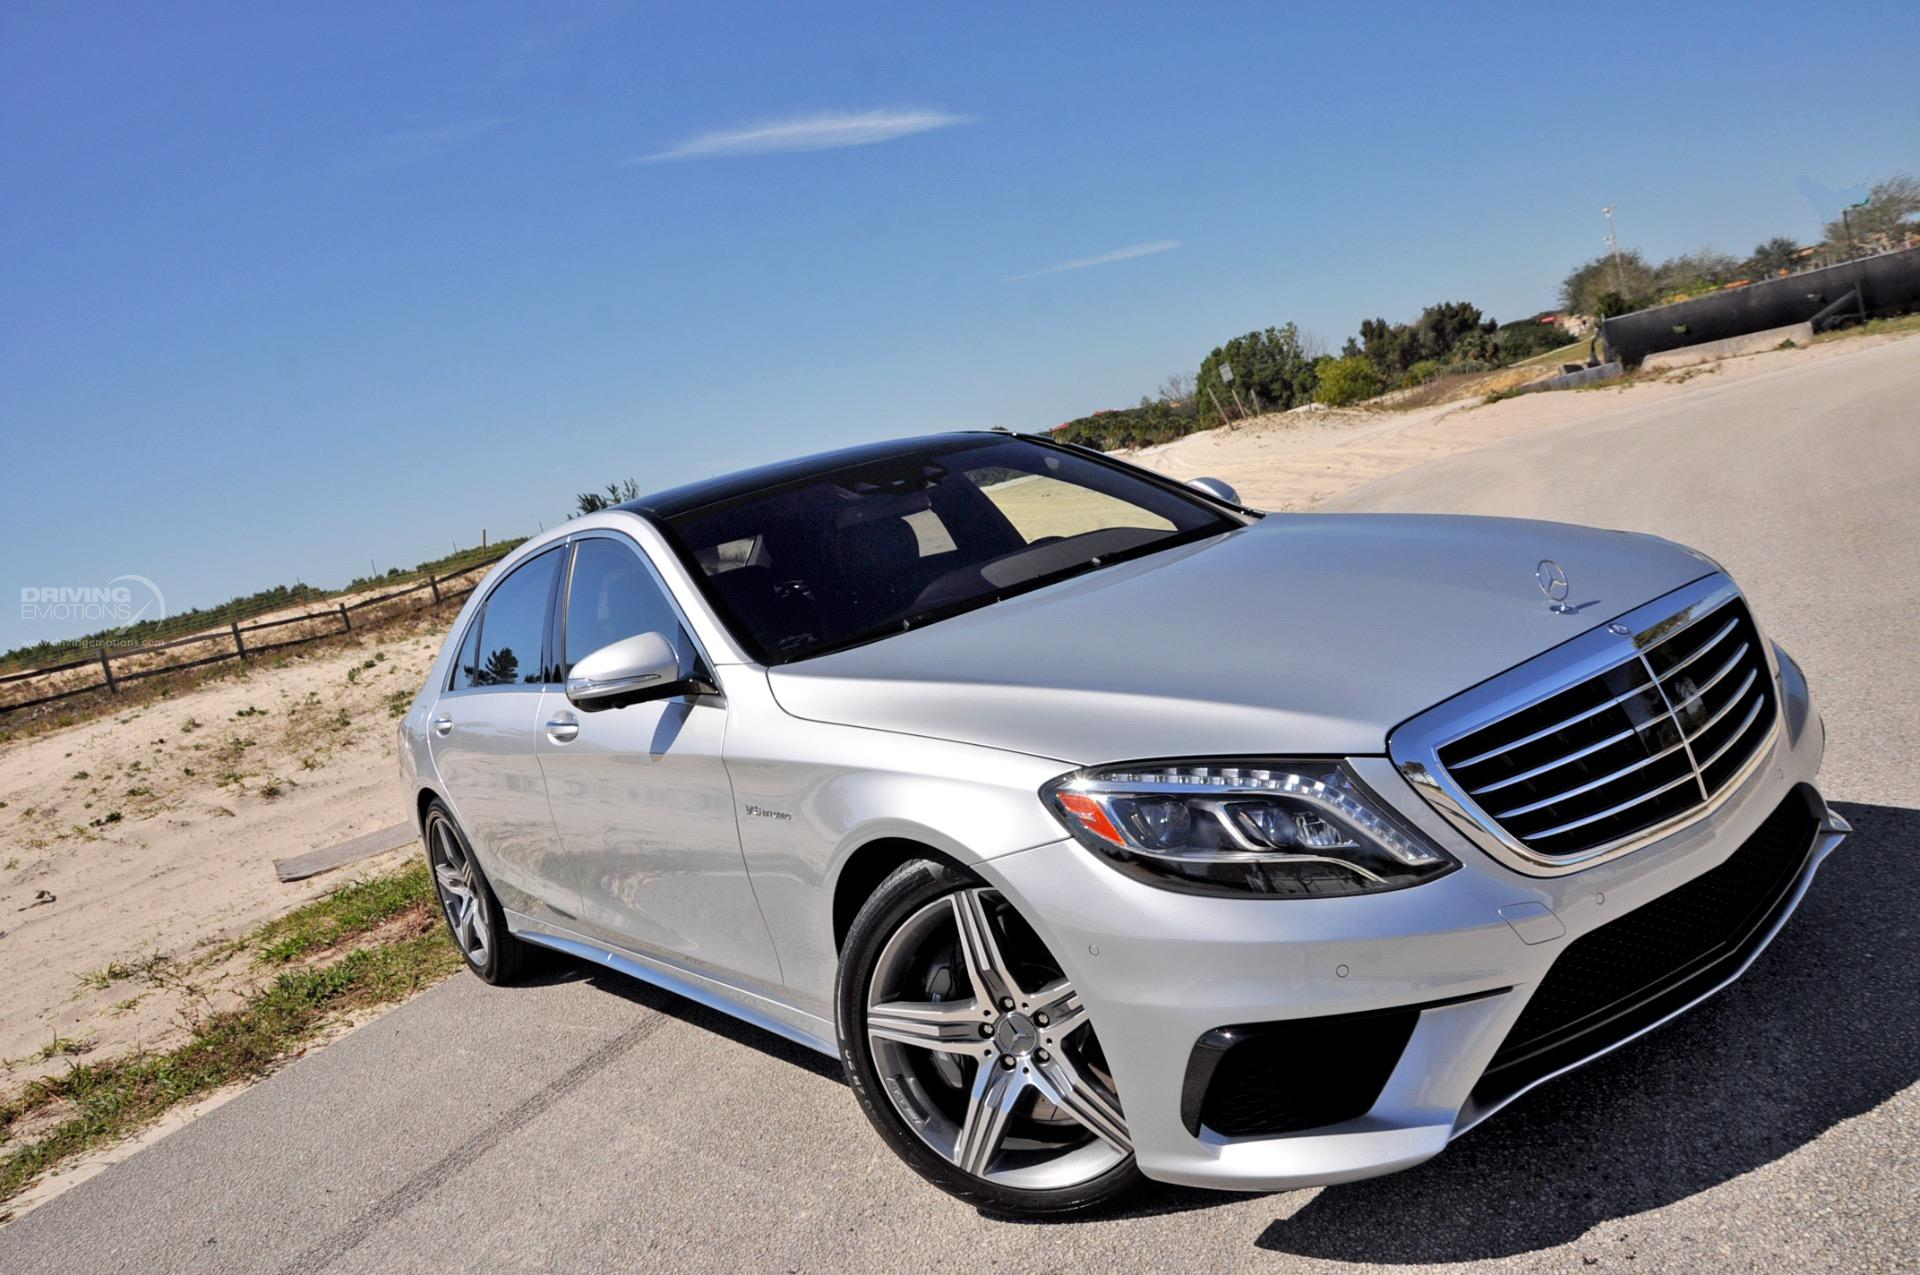 2014 mercedes benz s63 amg s63 amg stock 5858 for sale for Mercedes benz winter park